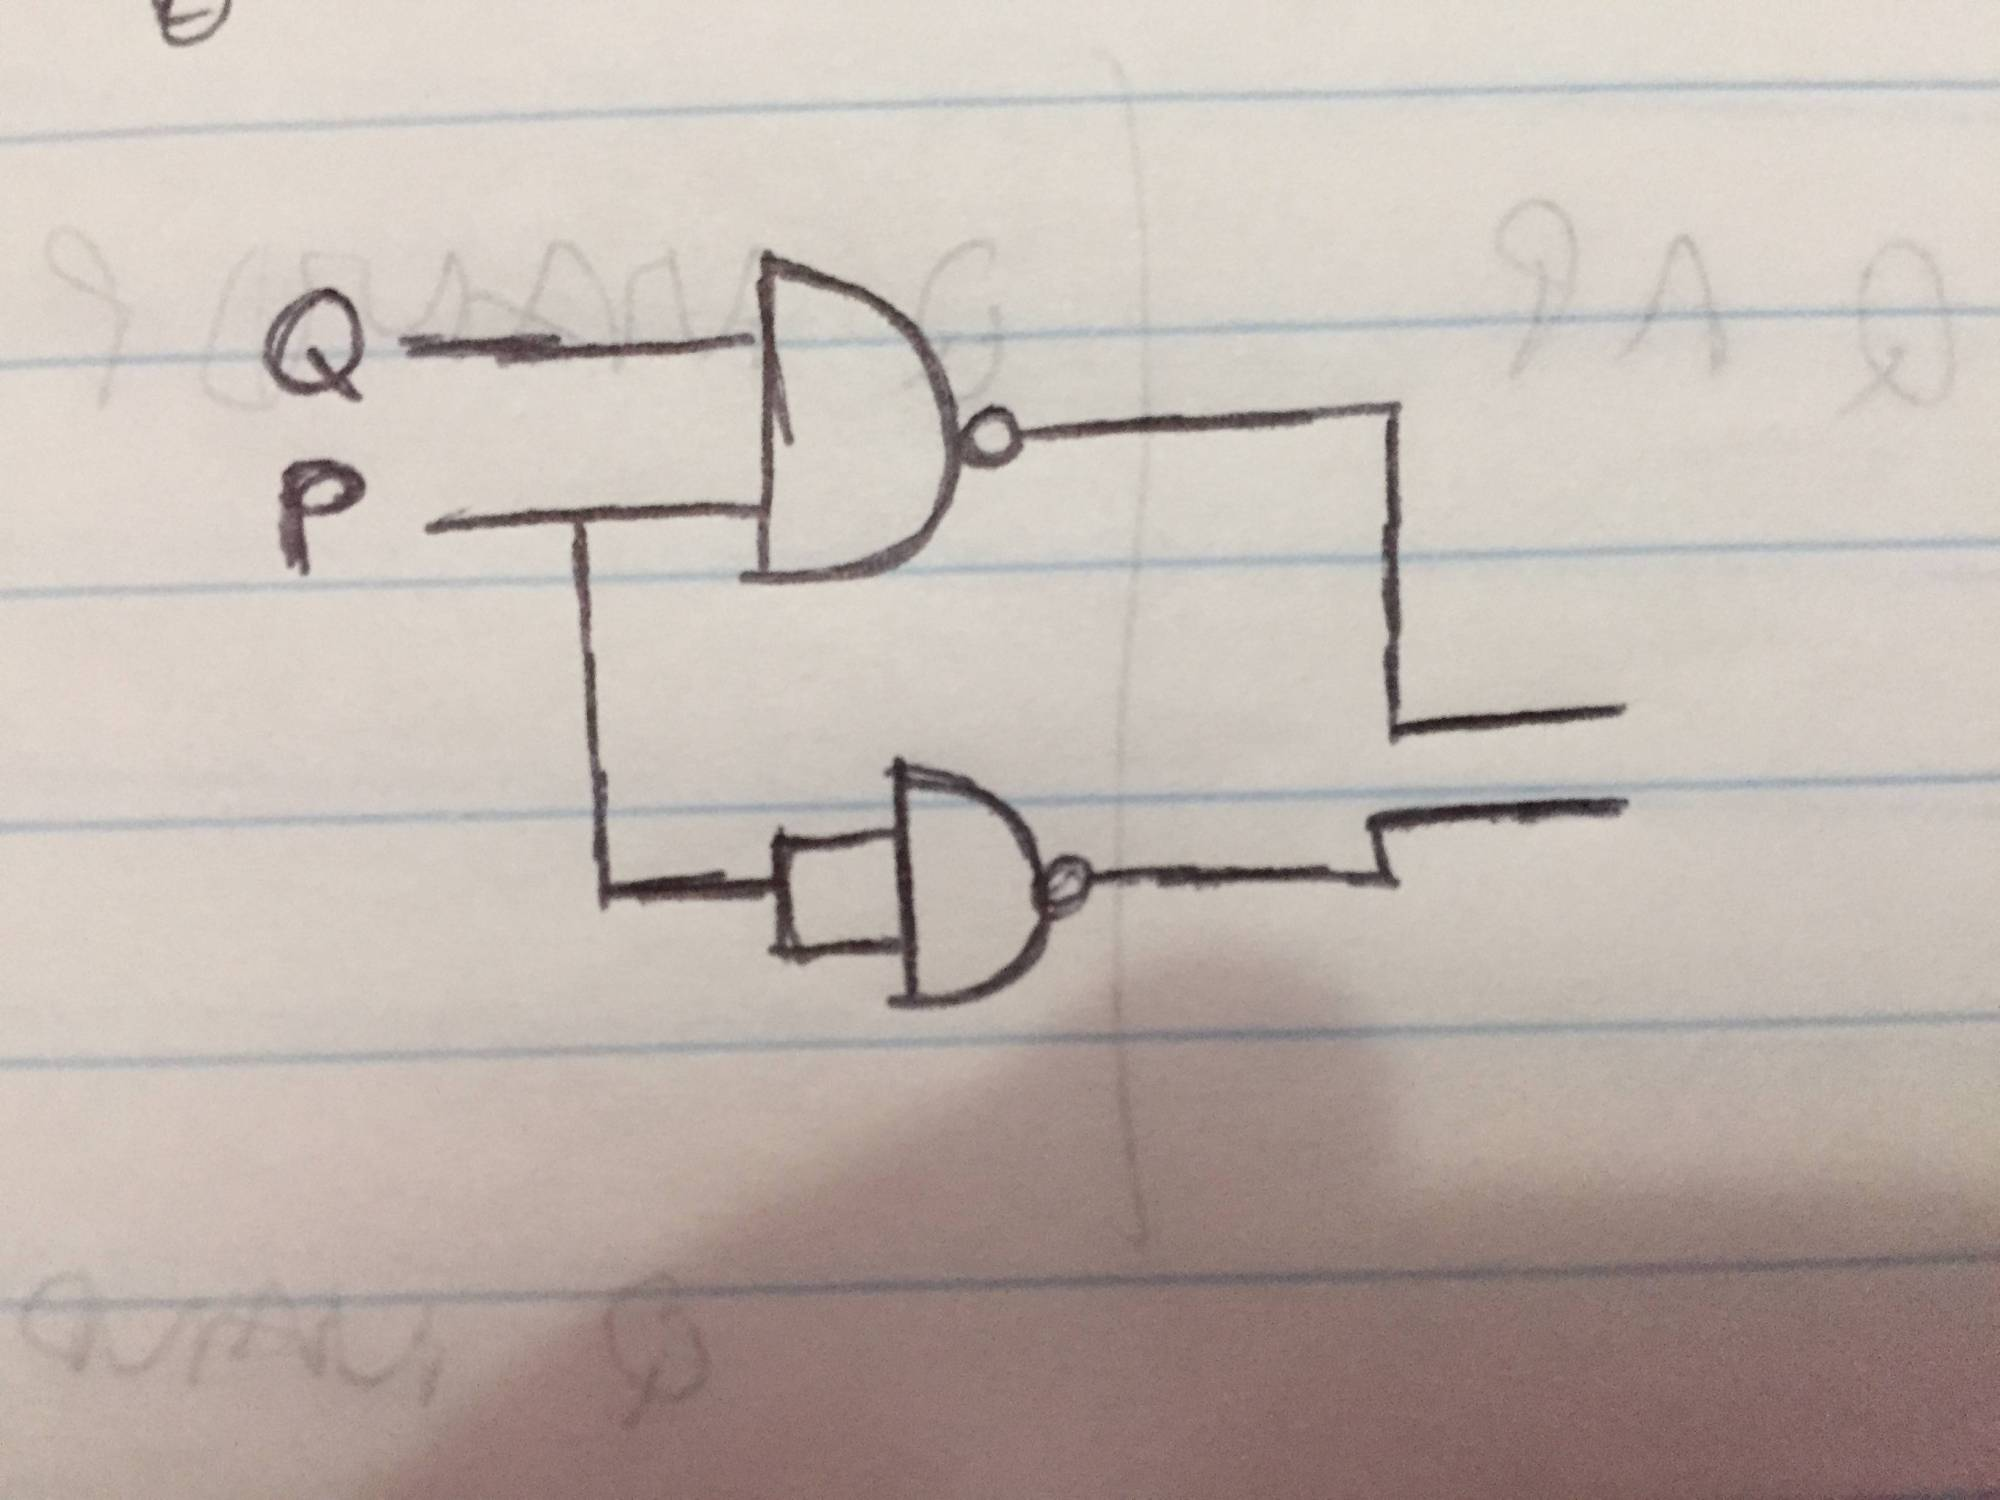 hight resolution of making a logic circuit with only nand gates electrical circuit using nand gates only logic diagram using nand gates only